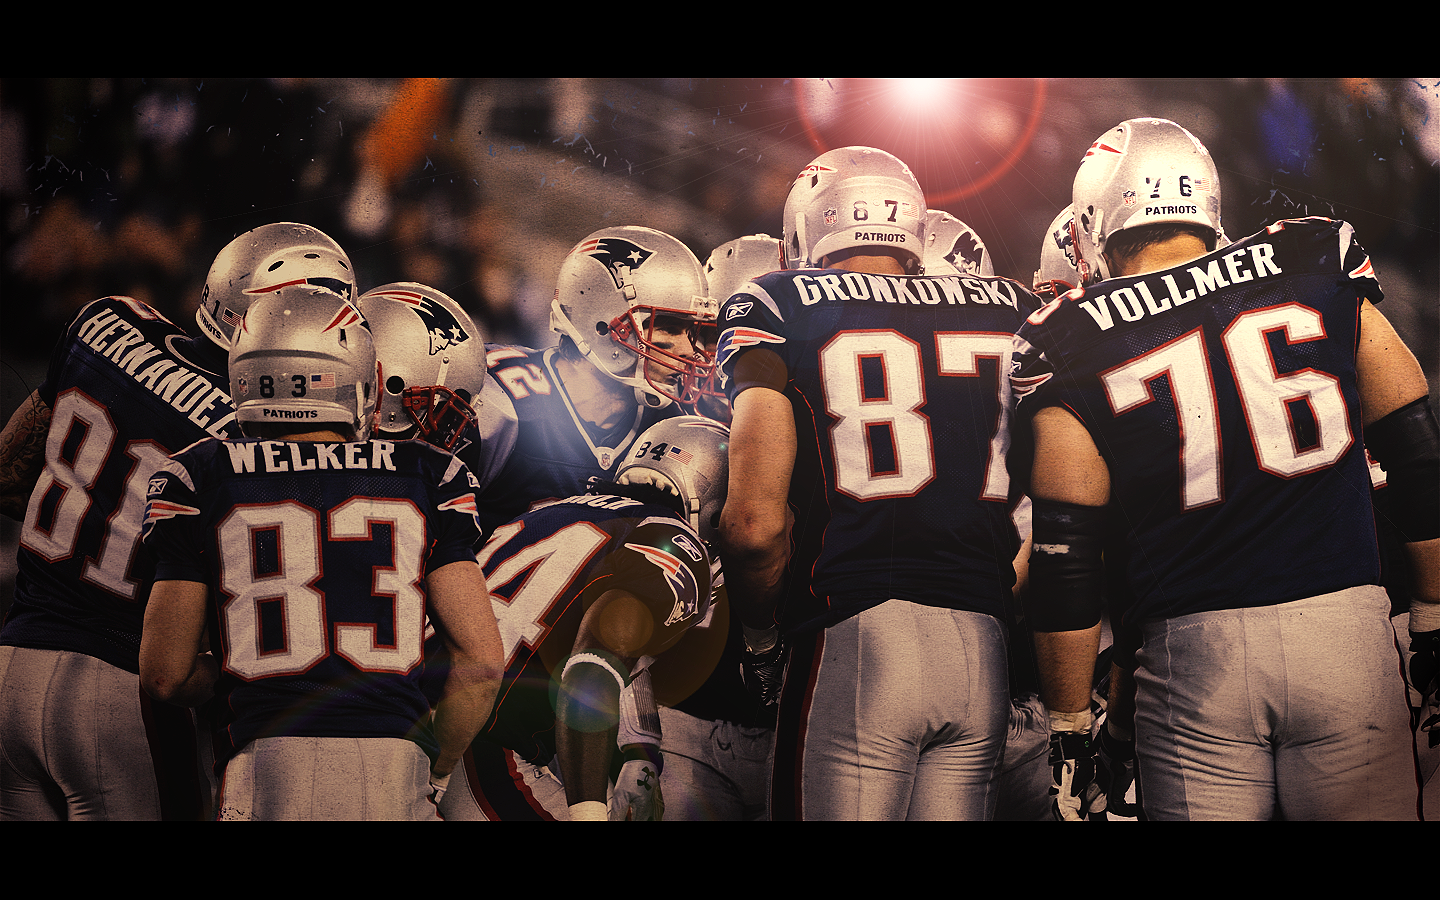 New england patriots wallpaper by hottsauce13 on deviantart new england patriots wallpaper by hottsauce13 new england patriots wallpaper by hottsauce13 voltagebd Images